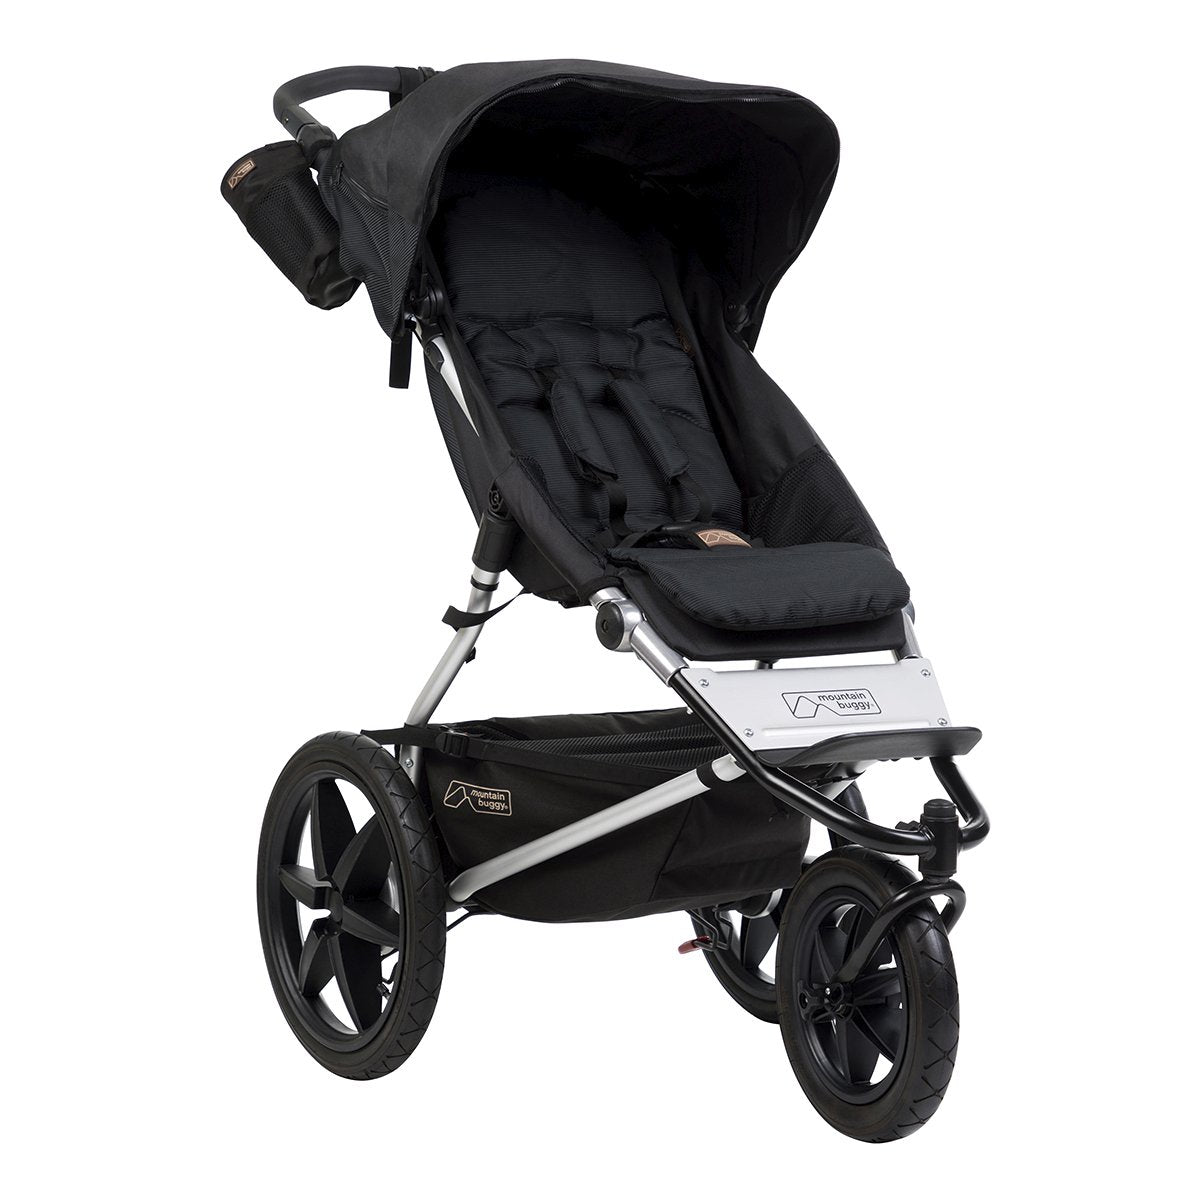 Mountain Buggy Terrain Jogging Pushchair - Includes Storm Cover - Happy Baby